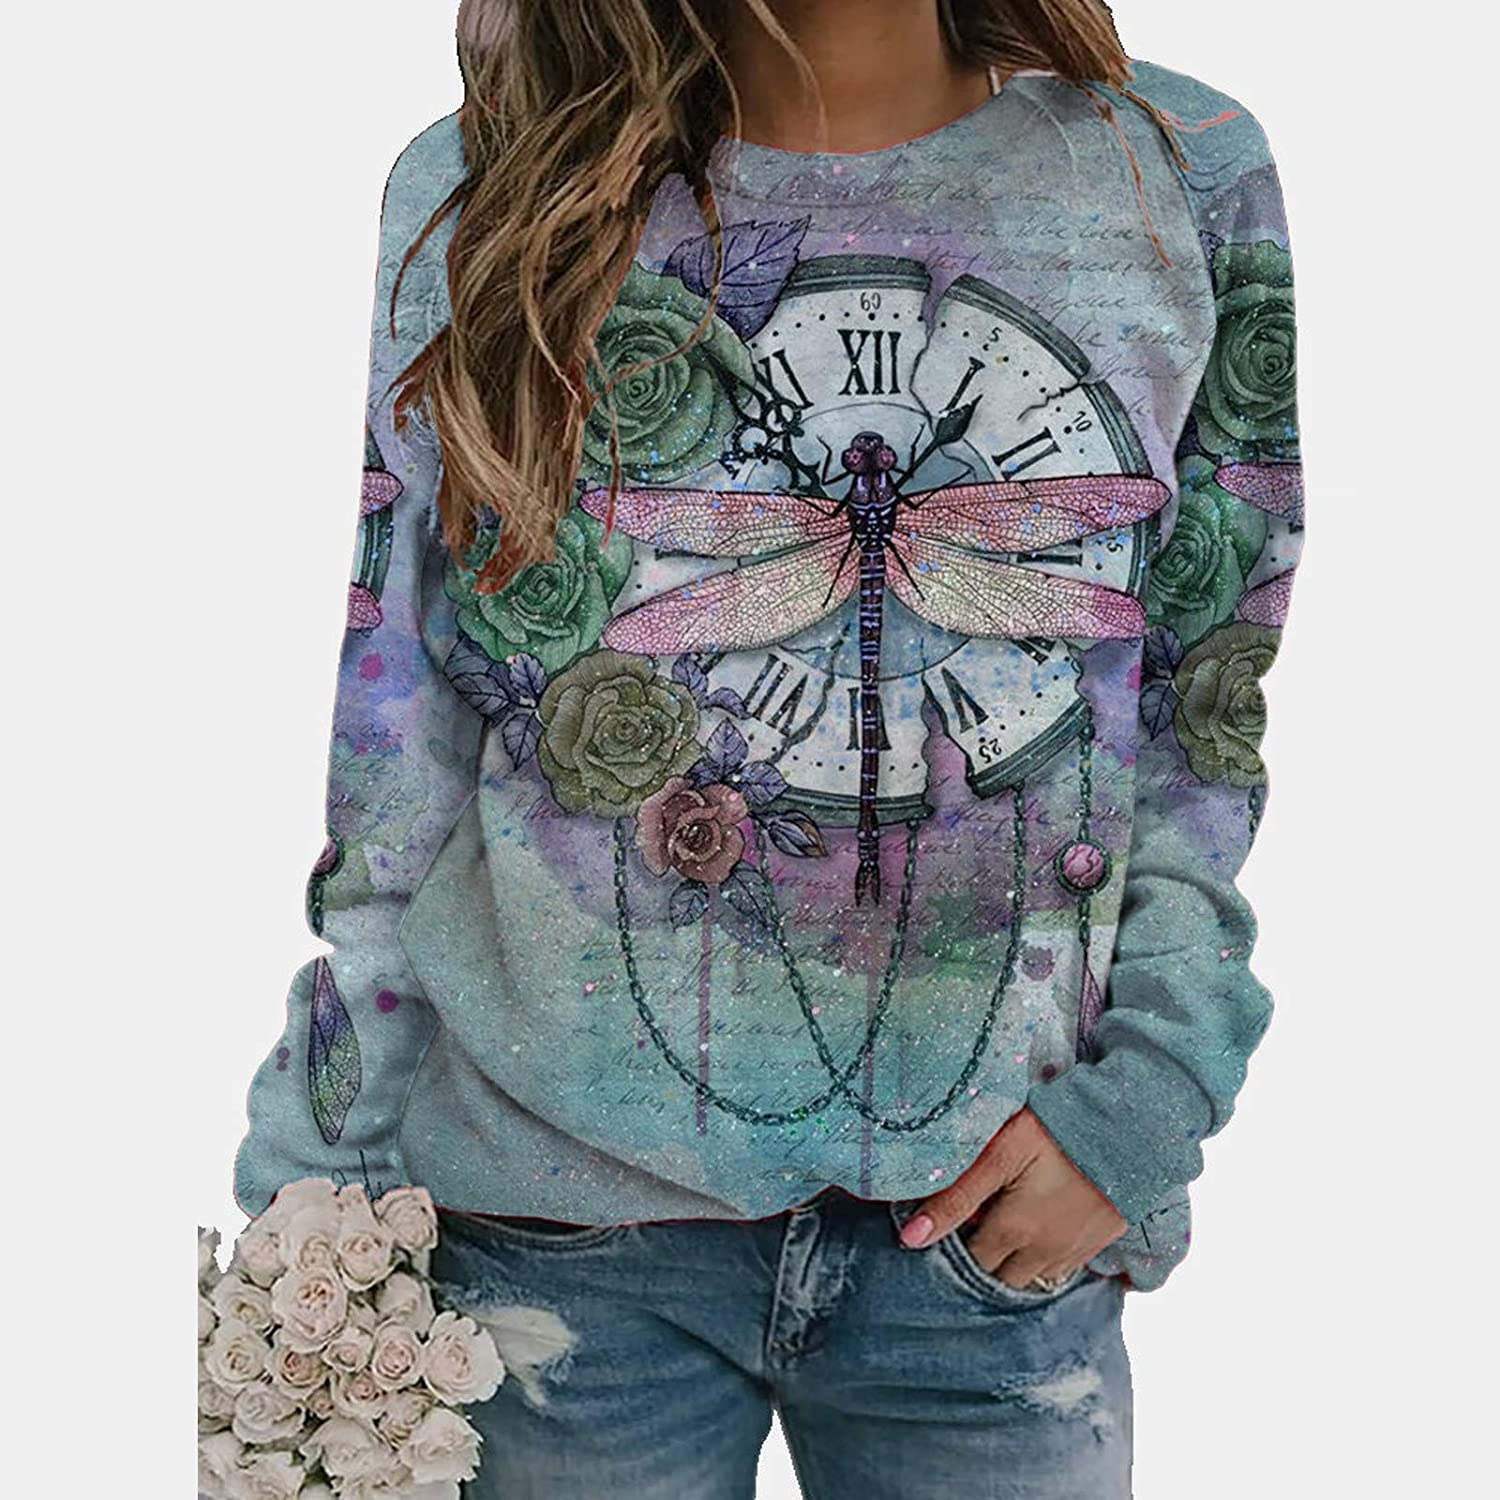 Zellaite Shirts for Women Plus Size Graphic Tees Long Sleeve Dragonfly Print Casual Crewneck Sweatshirts Pullover Tops